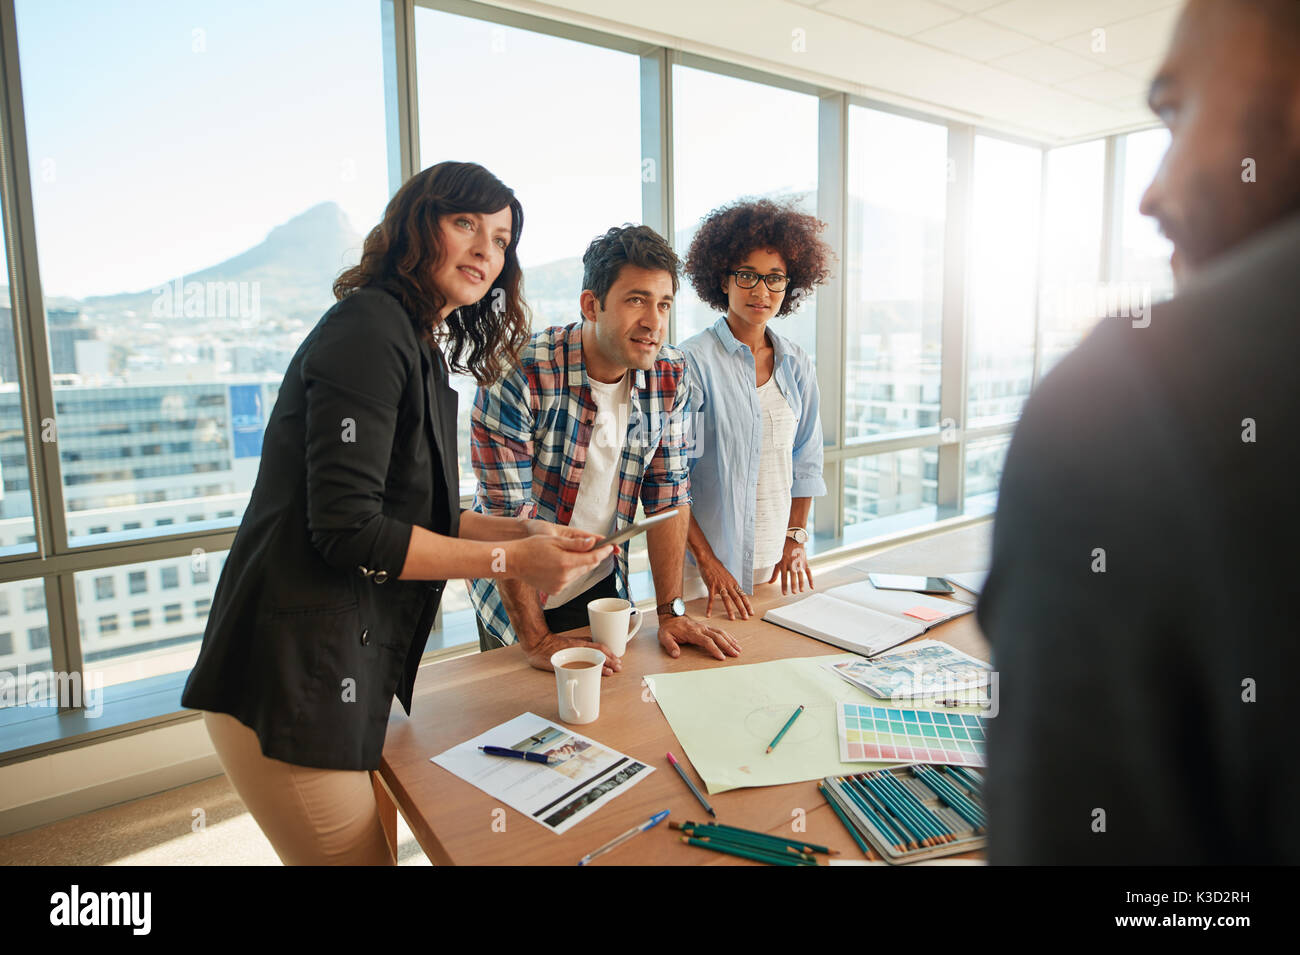 Group of young designer working together on project. Team brainstorming over new designs in meeting  room. - Stock Image